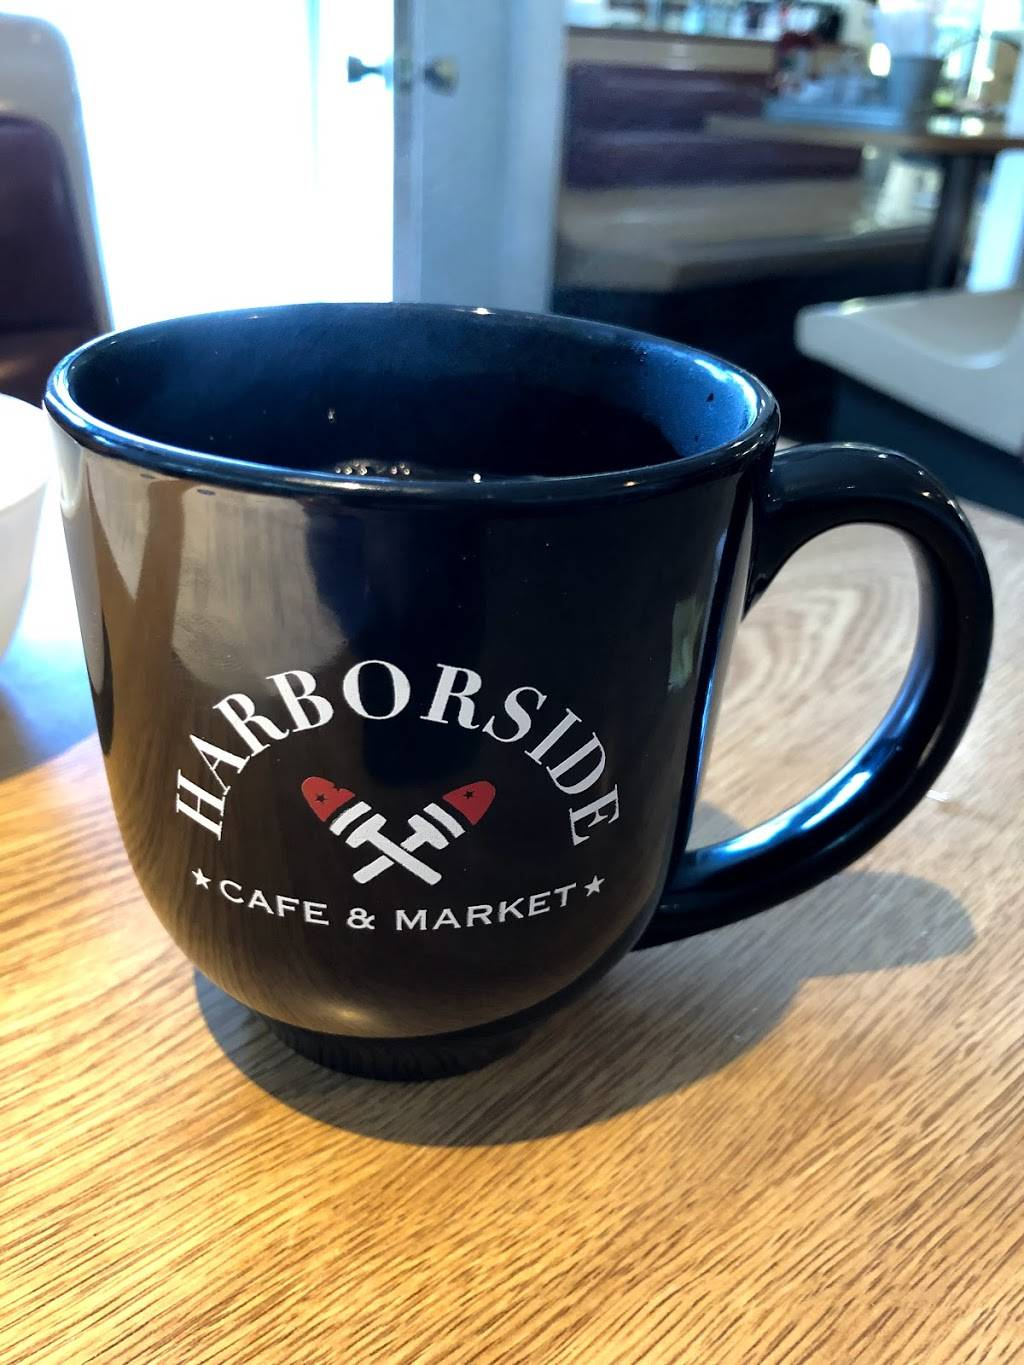 Harborside Grocery & Grill | restaurant | 2075 ME-129, South Bristol, ME 04568, USA | 2076440041 OR +1 207-644-0041